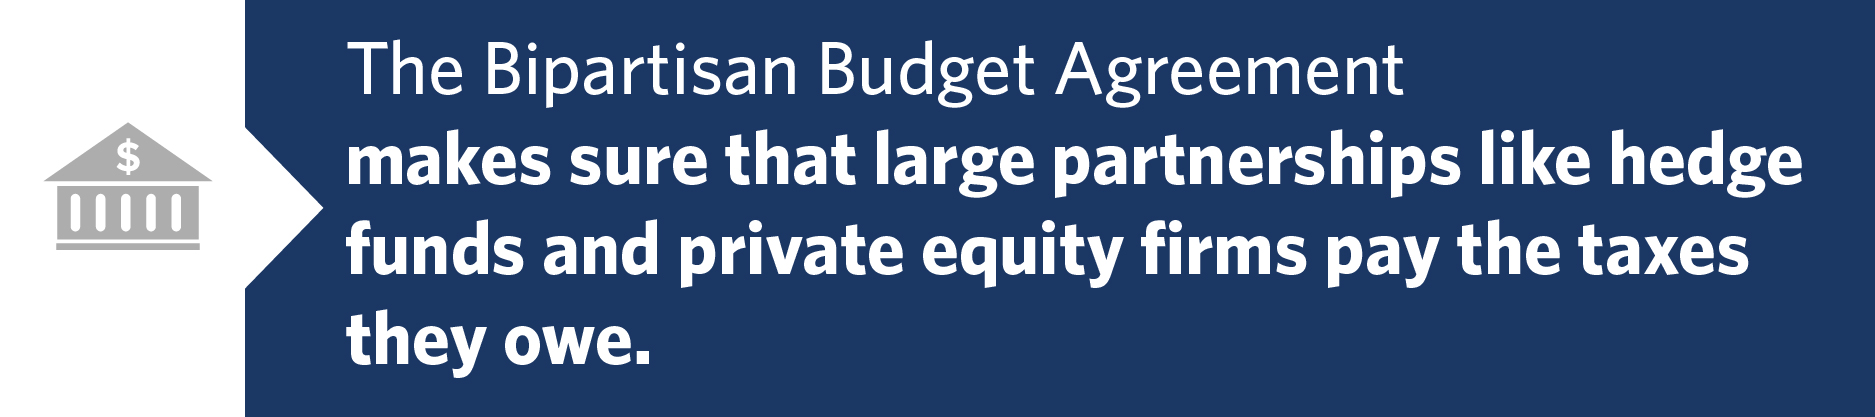 Bipartisan Budget Agreement Hedge Funds Pay Taxes